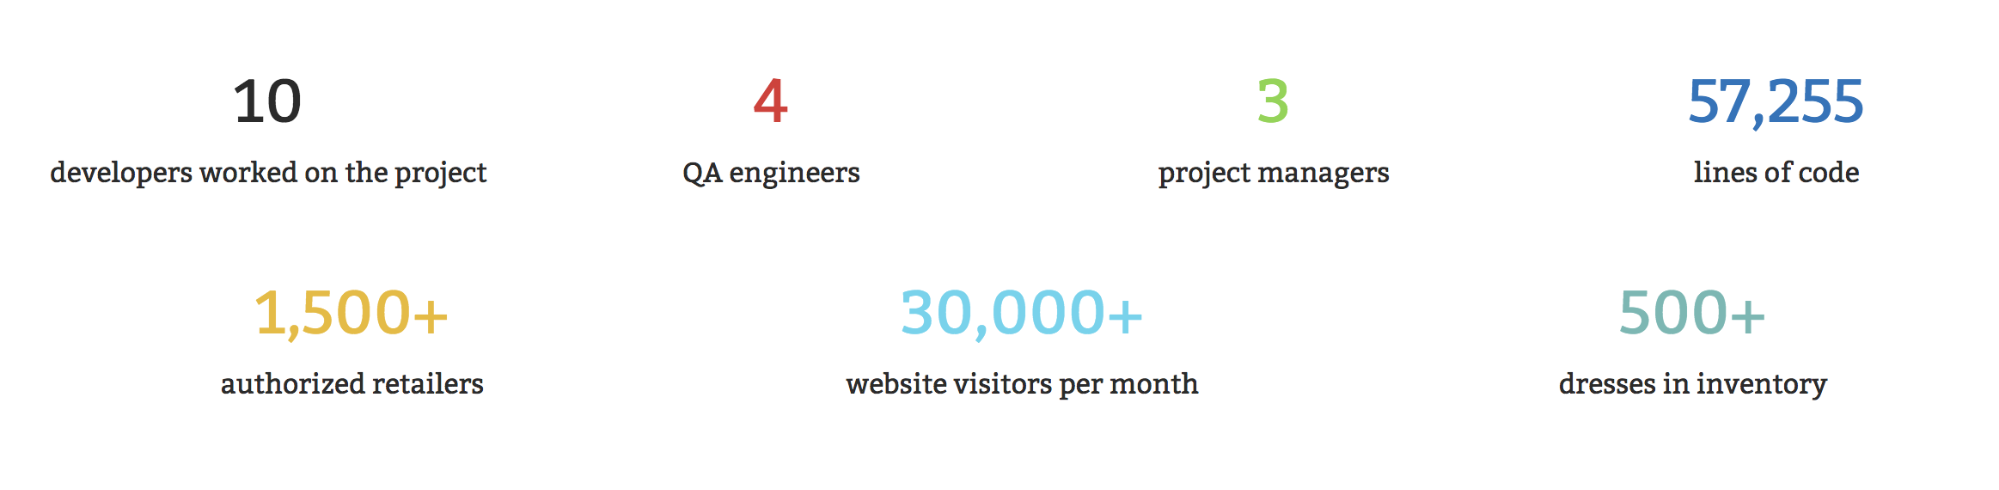 outsourced development of website stats